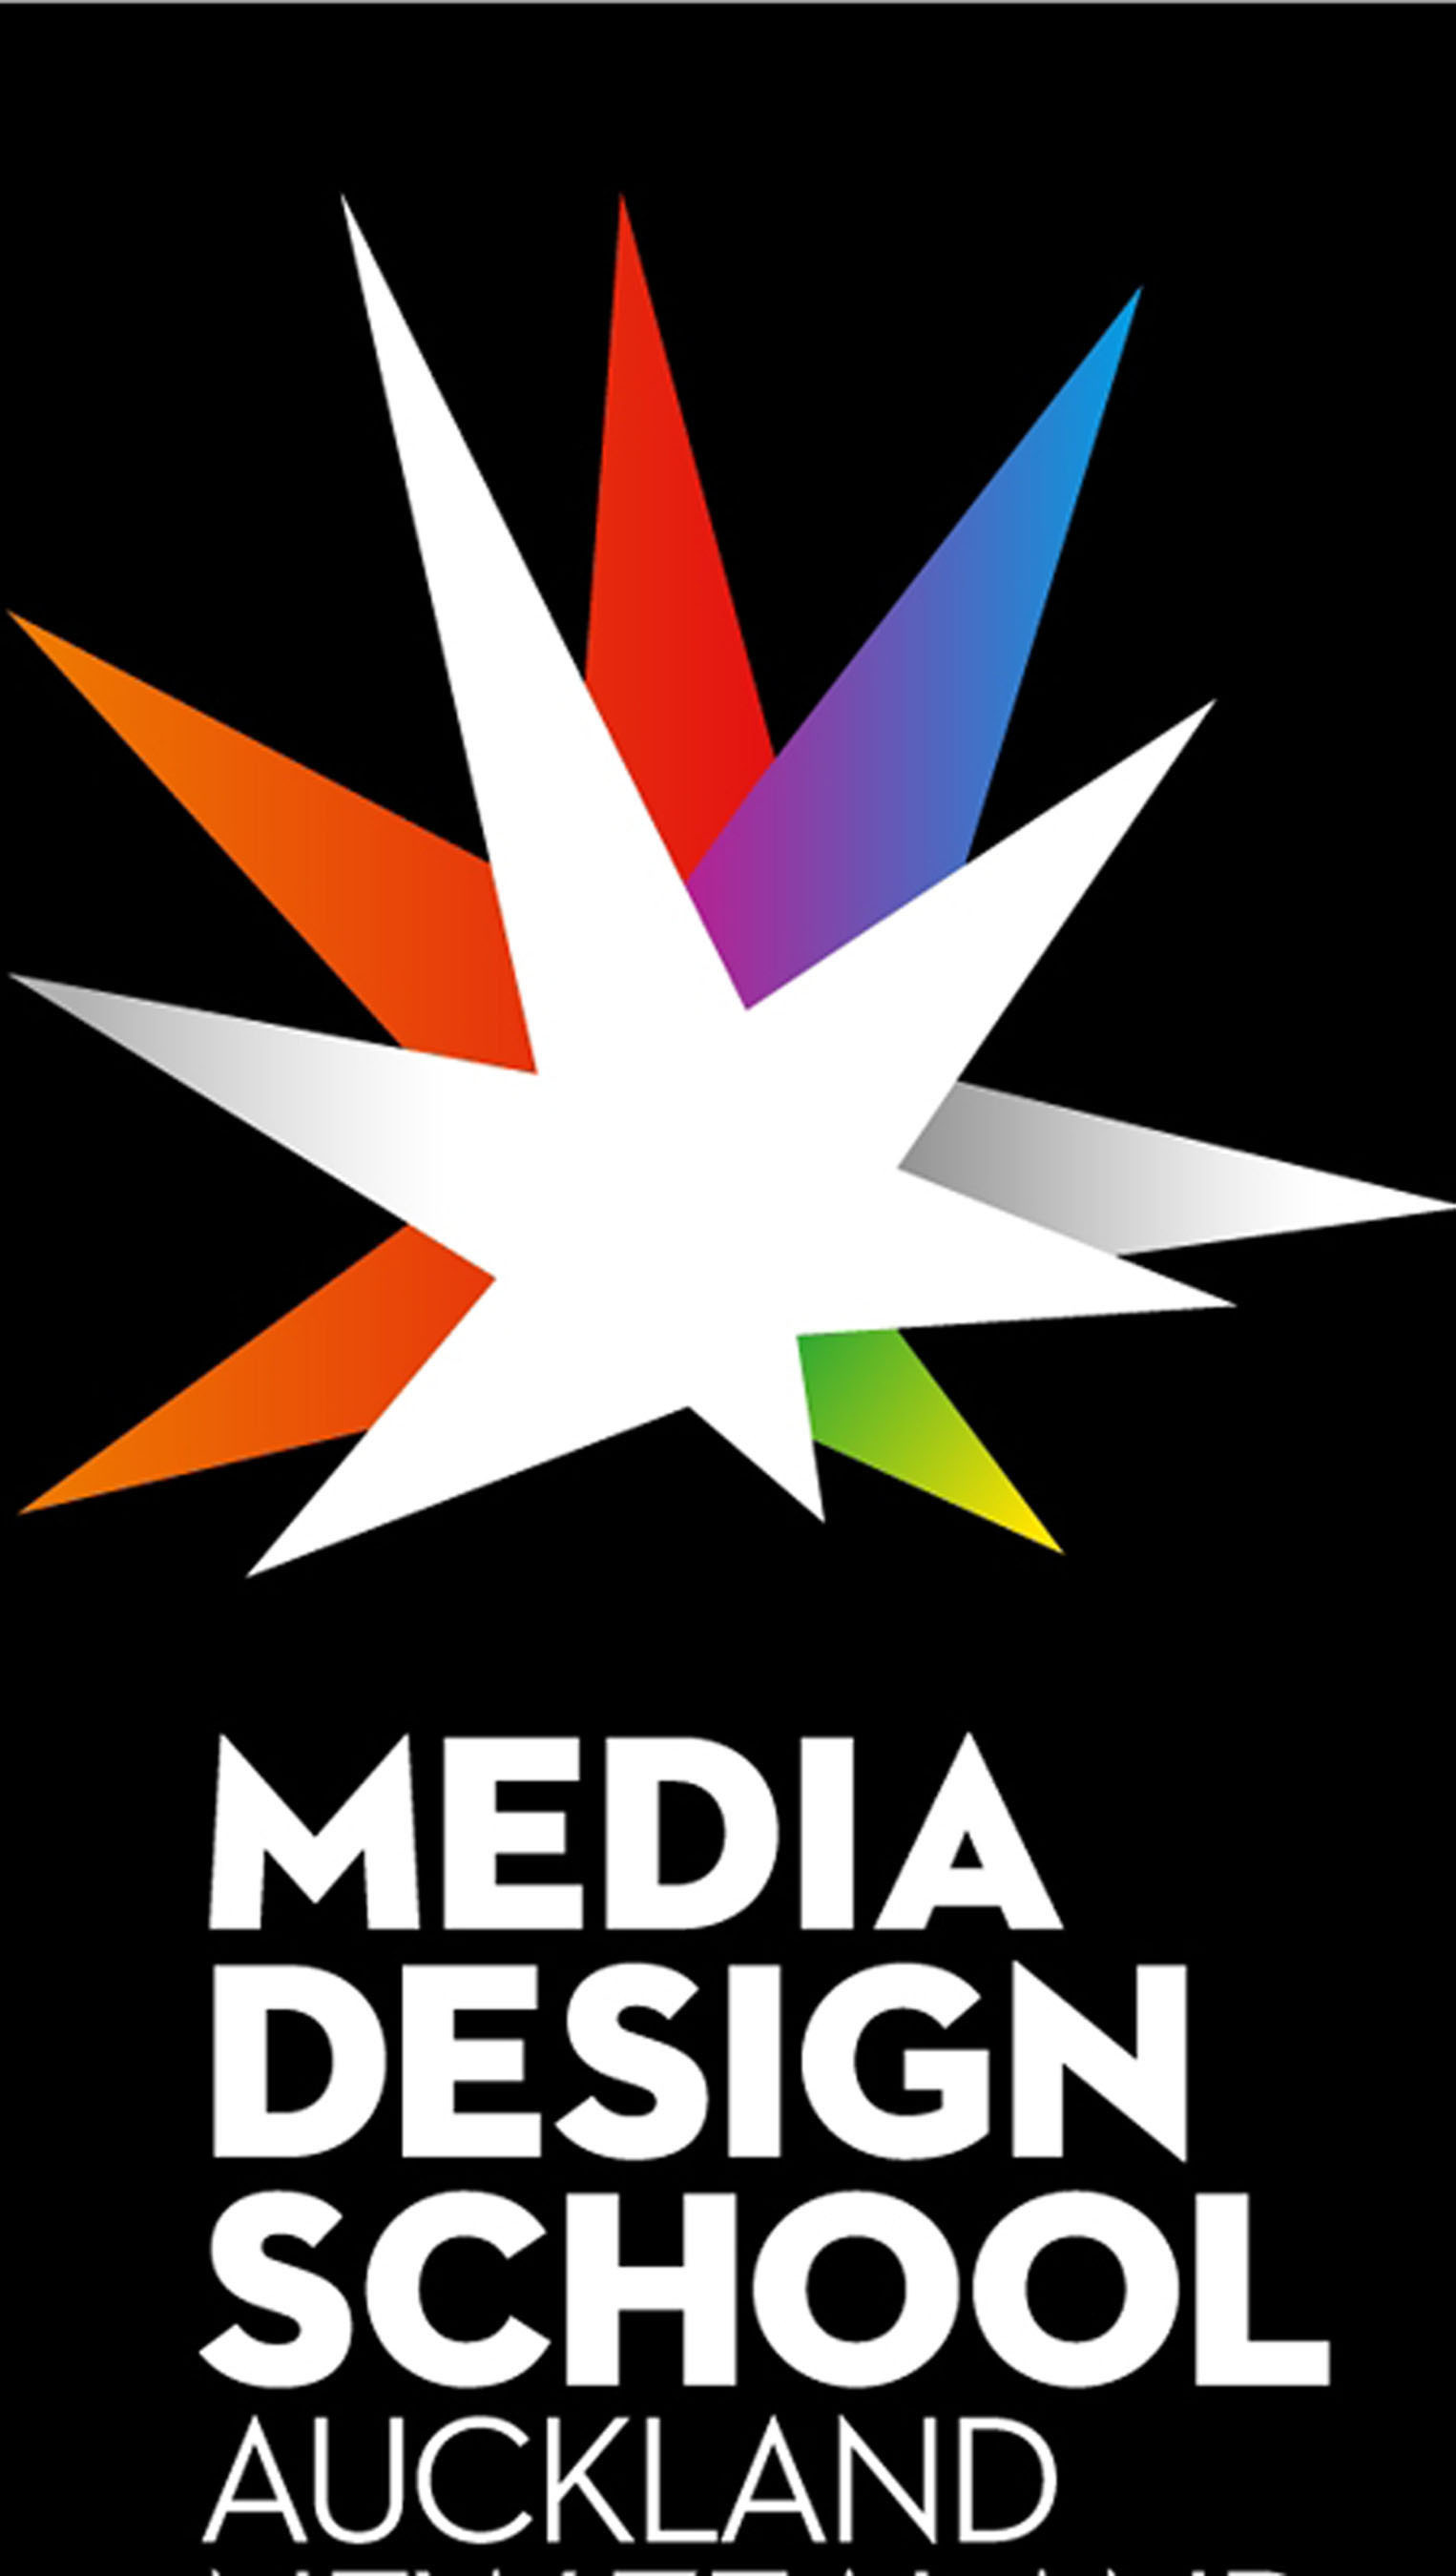 Media Design School is New Zealand's most-awarded private tertiary institution. Distinguished by its close ...